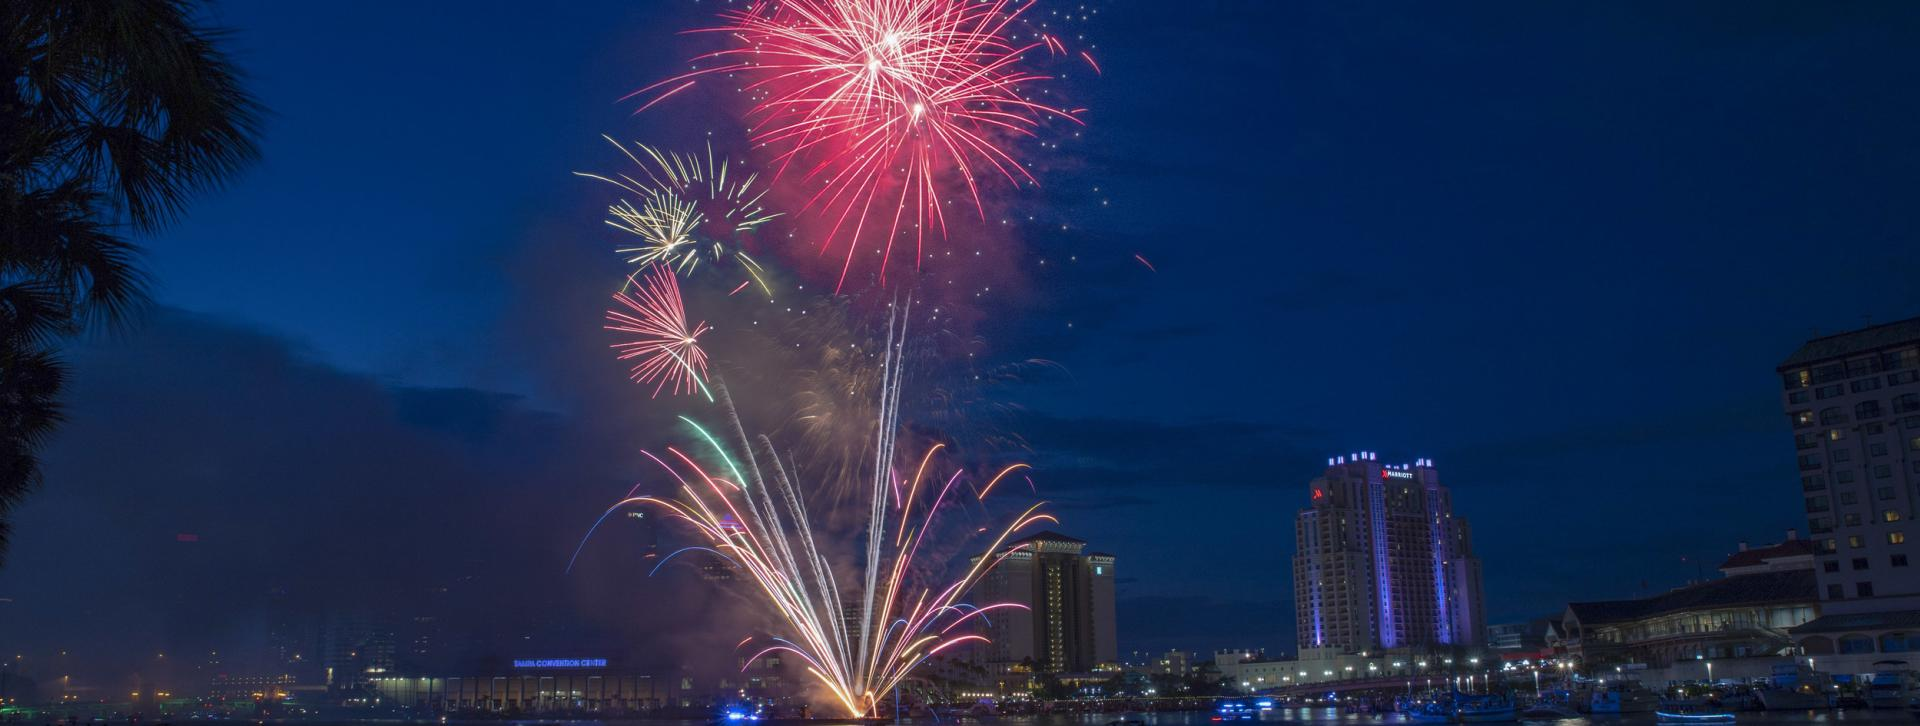 new year s events in tampa bay new year s events in tampa bay